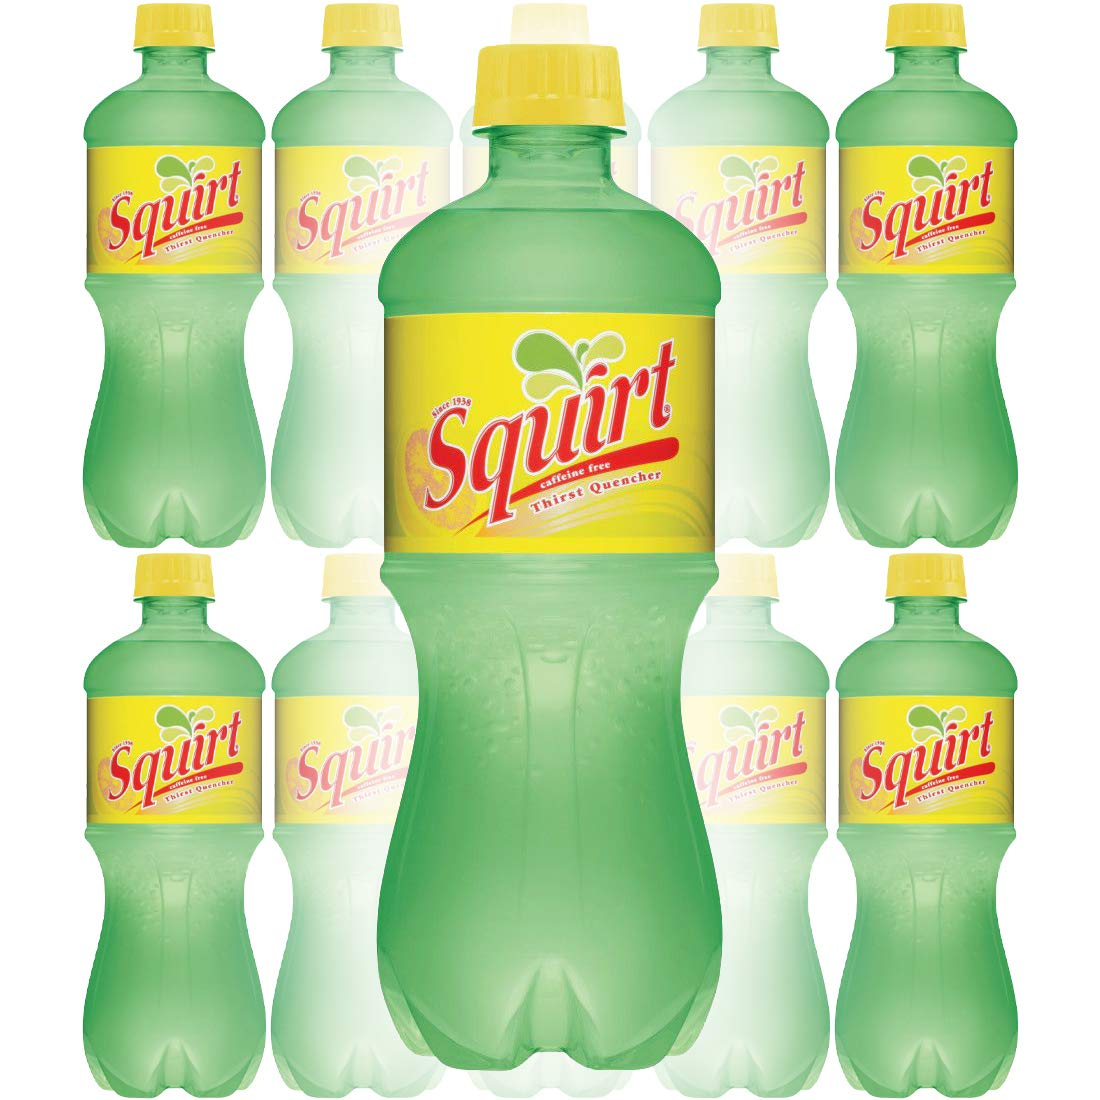 Squirt Citrus Soda, Caffeine-Free, Authentic Thirst Quencher, 20oz Bottle (Pack of 10, Total of 200 Fl Oz)